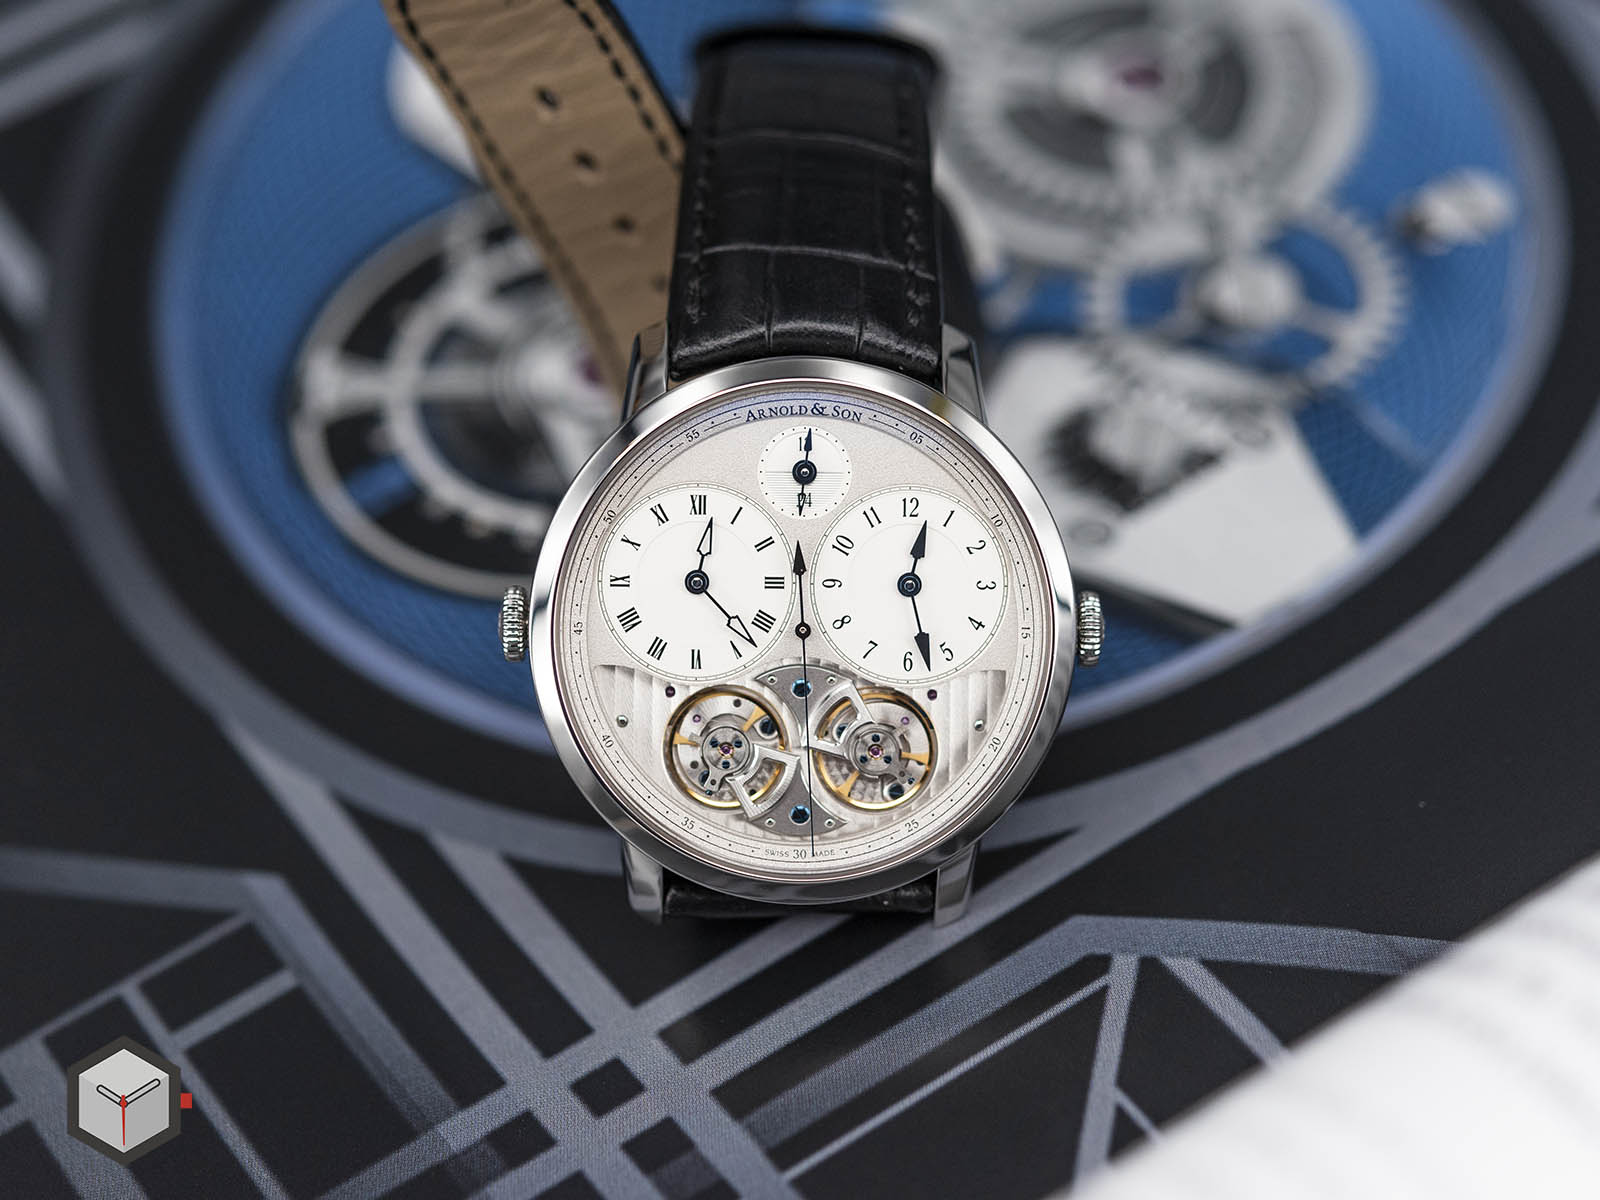 1dgas-s01a-c121s-arnold-son-dbg-equation-gmt-5.jpg